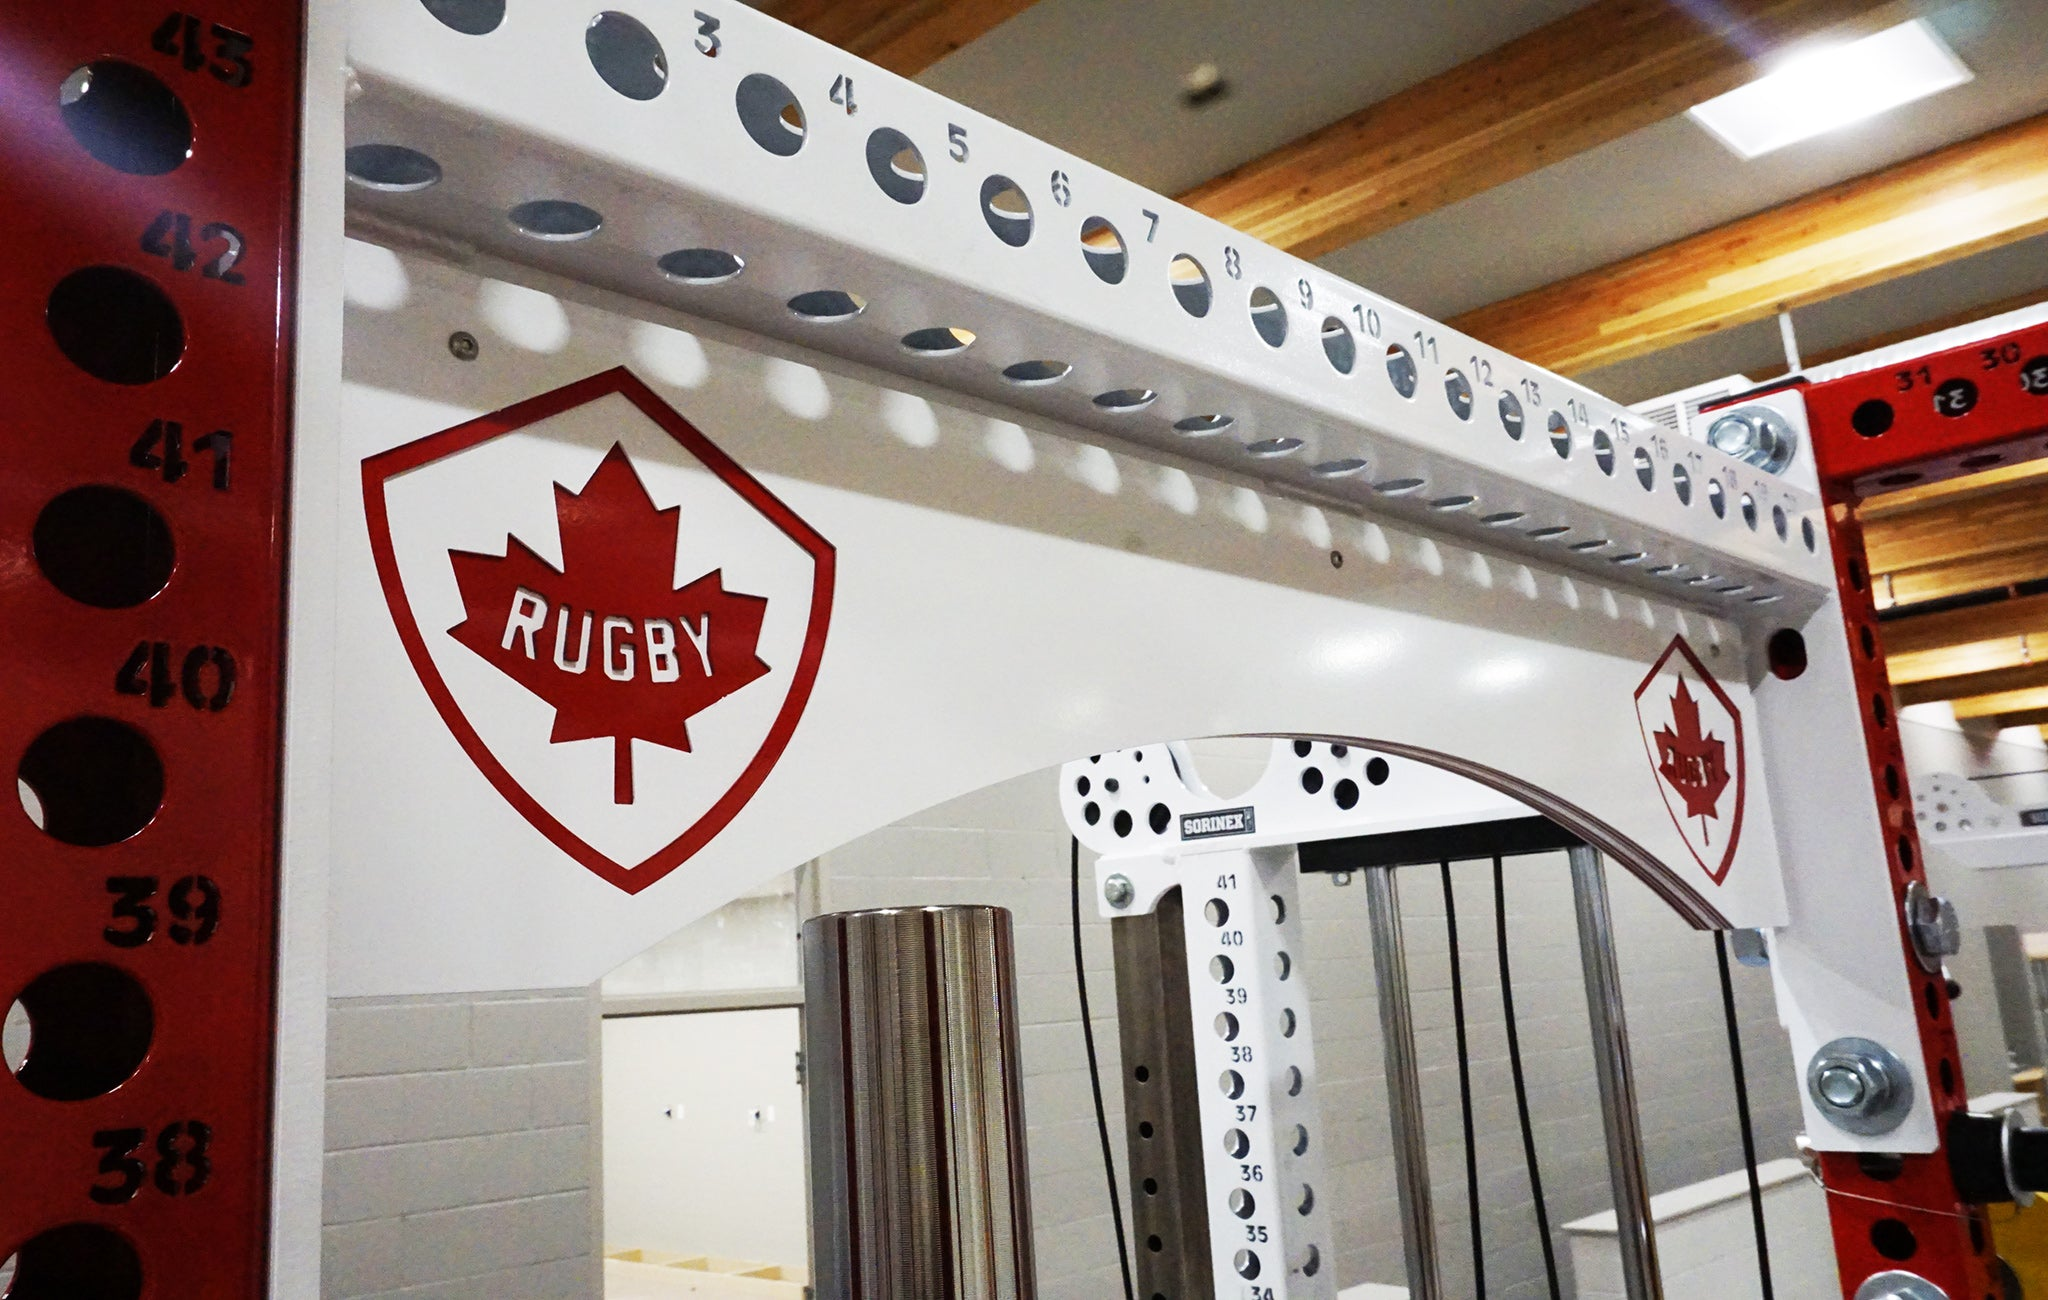 Professional rugby strength training facilities